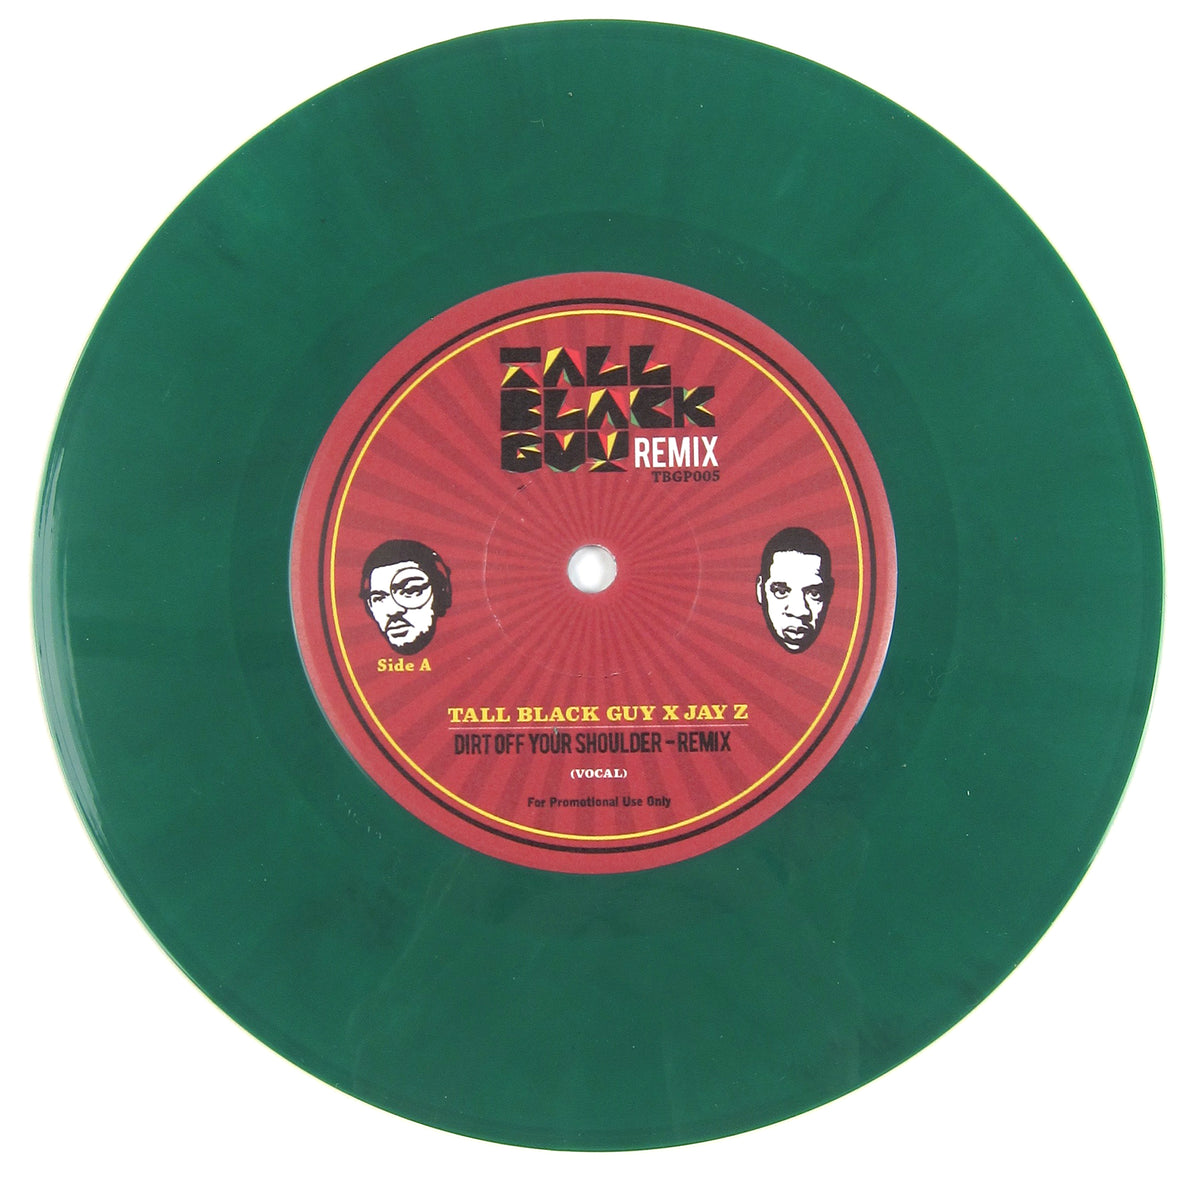 Tall Black Guy x Jay Z: Dirt Off Your Shoulder Remix Vinyl 7""